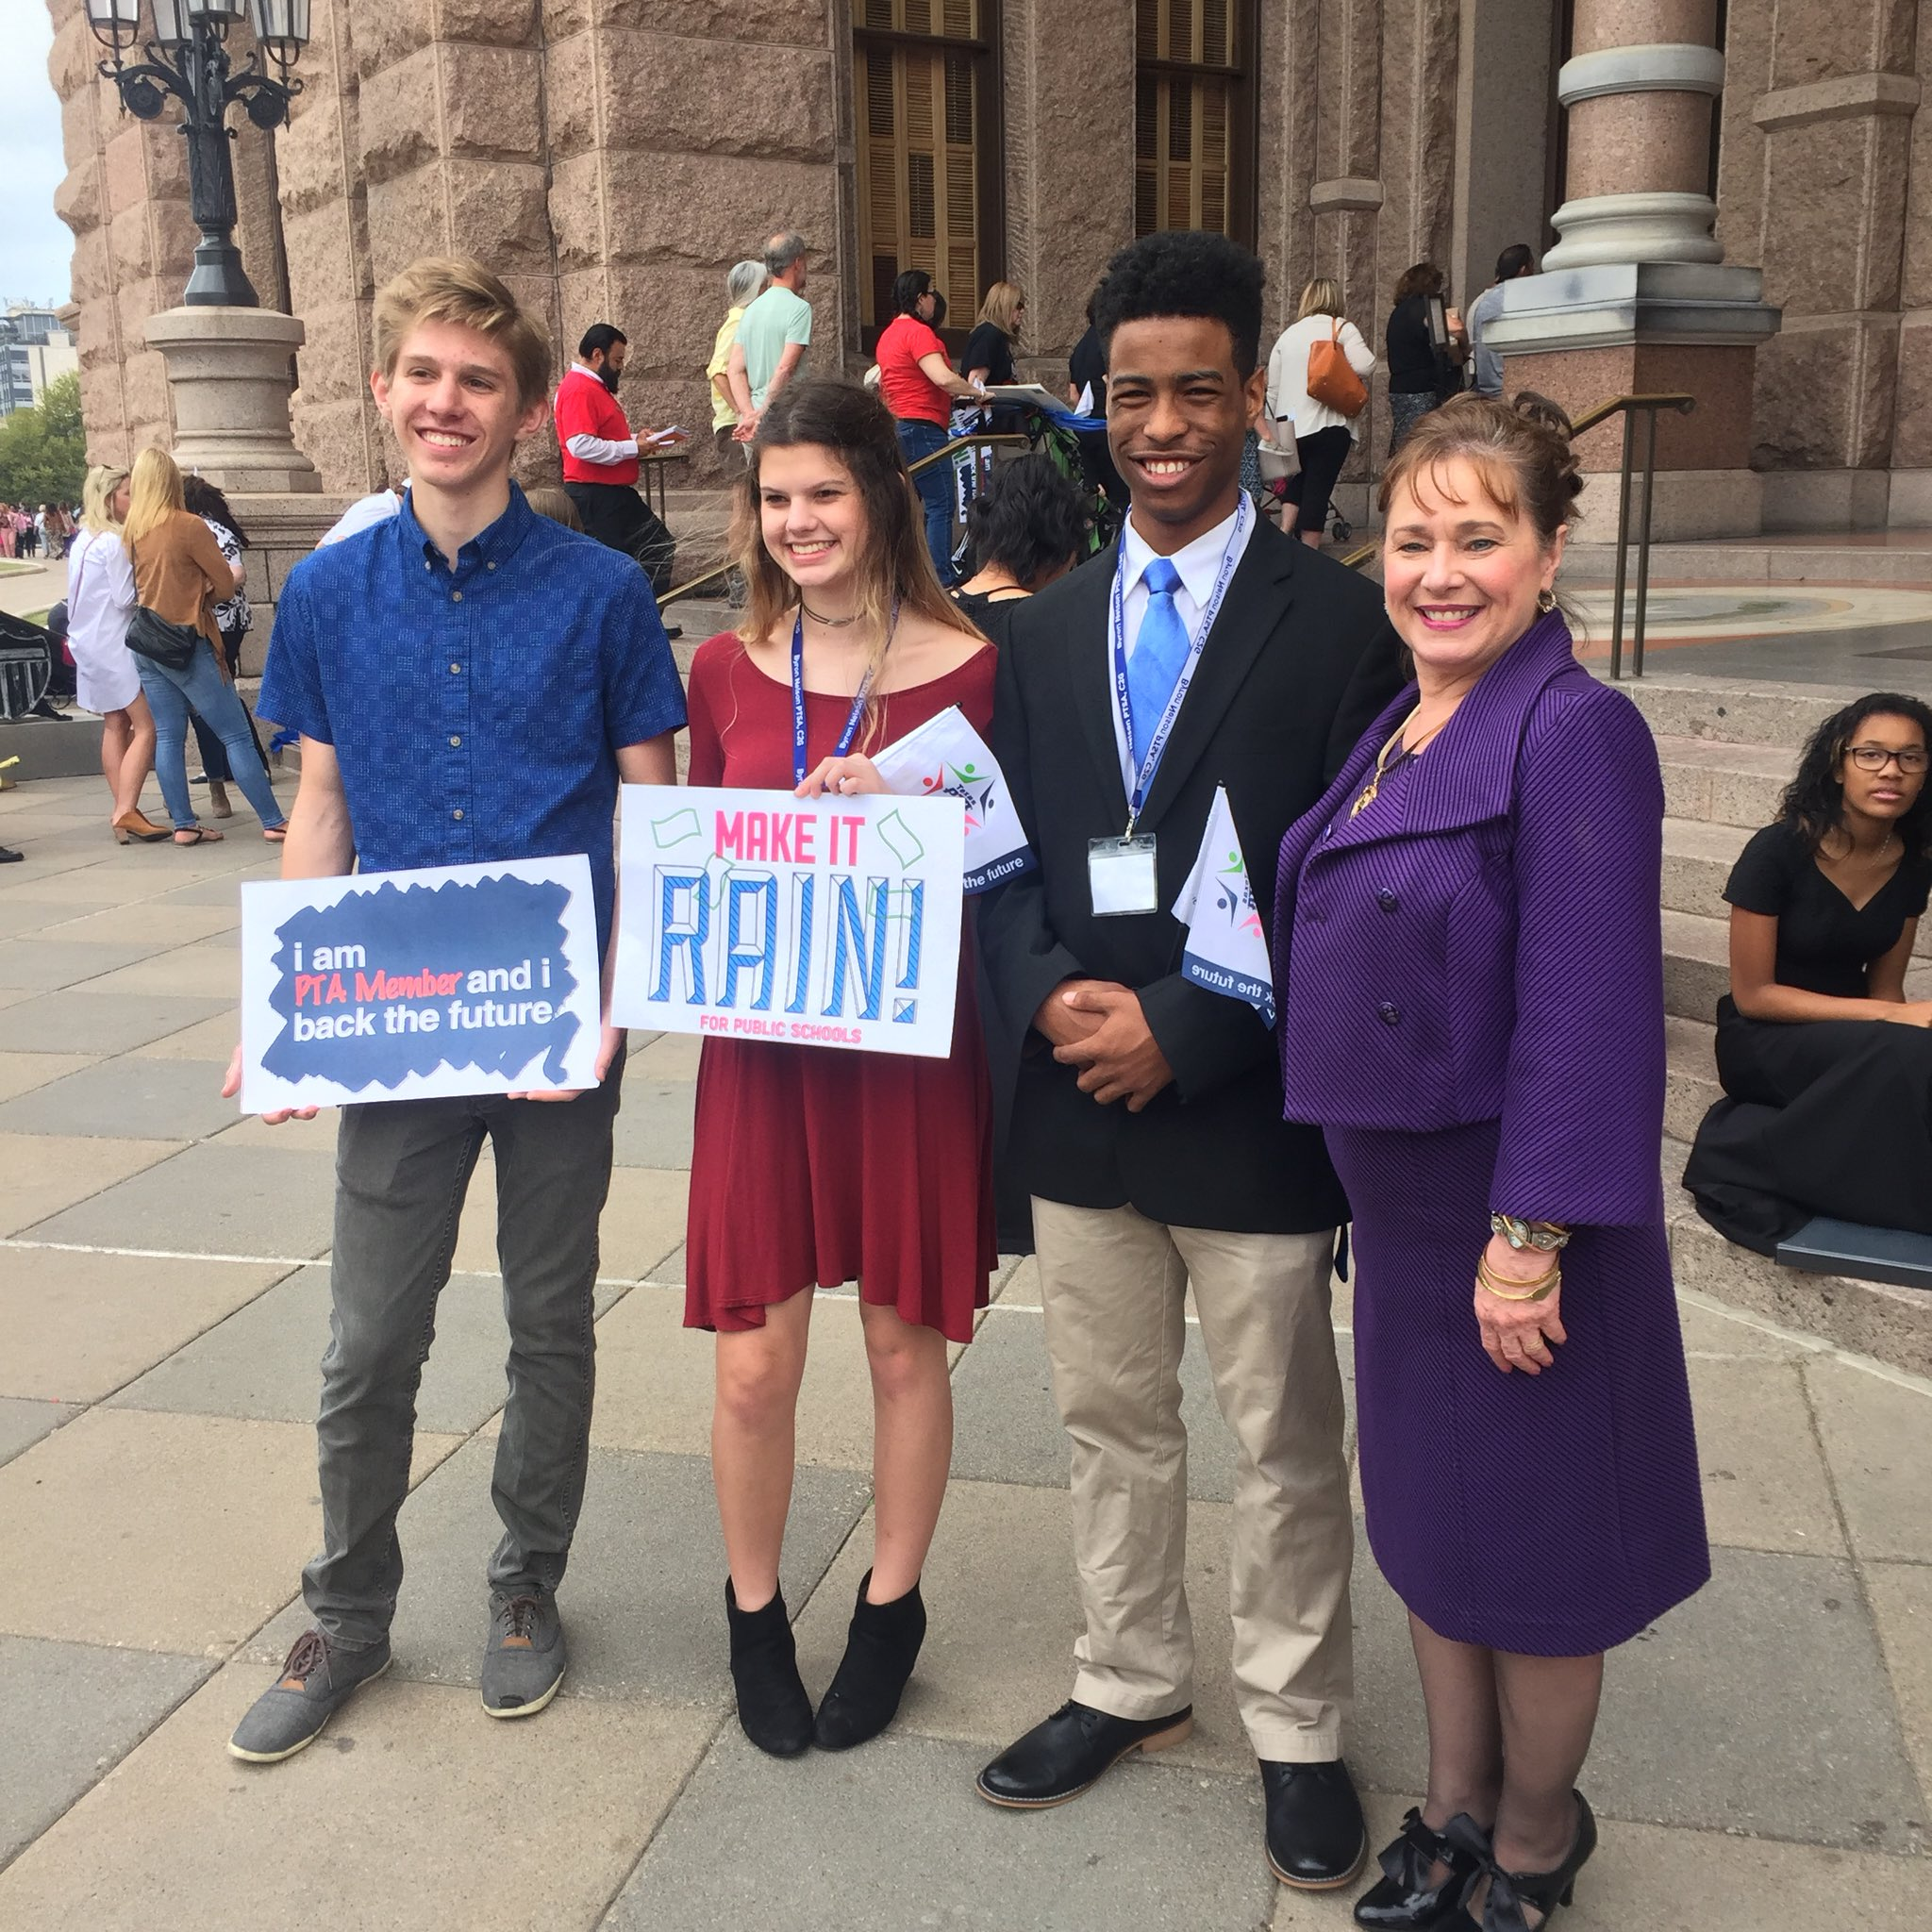 BNHS PTSA Student members with Texas PTA President Lisa Holbrook at Rally Day 2017. Proud of these students. #1K4RallyDay https://t.co/kRbm6lPkro